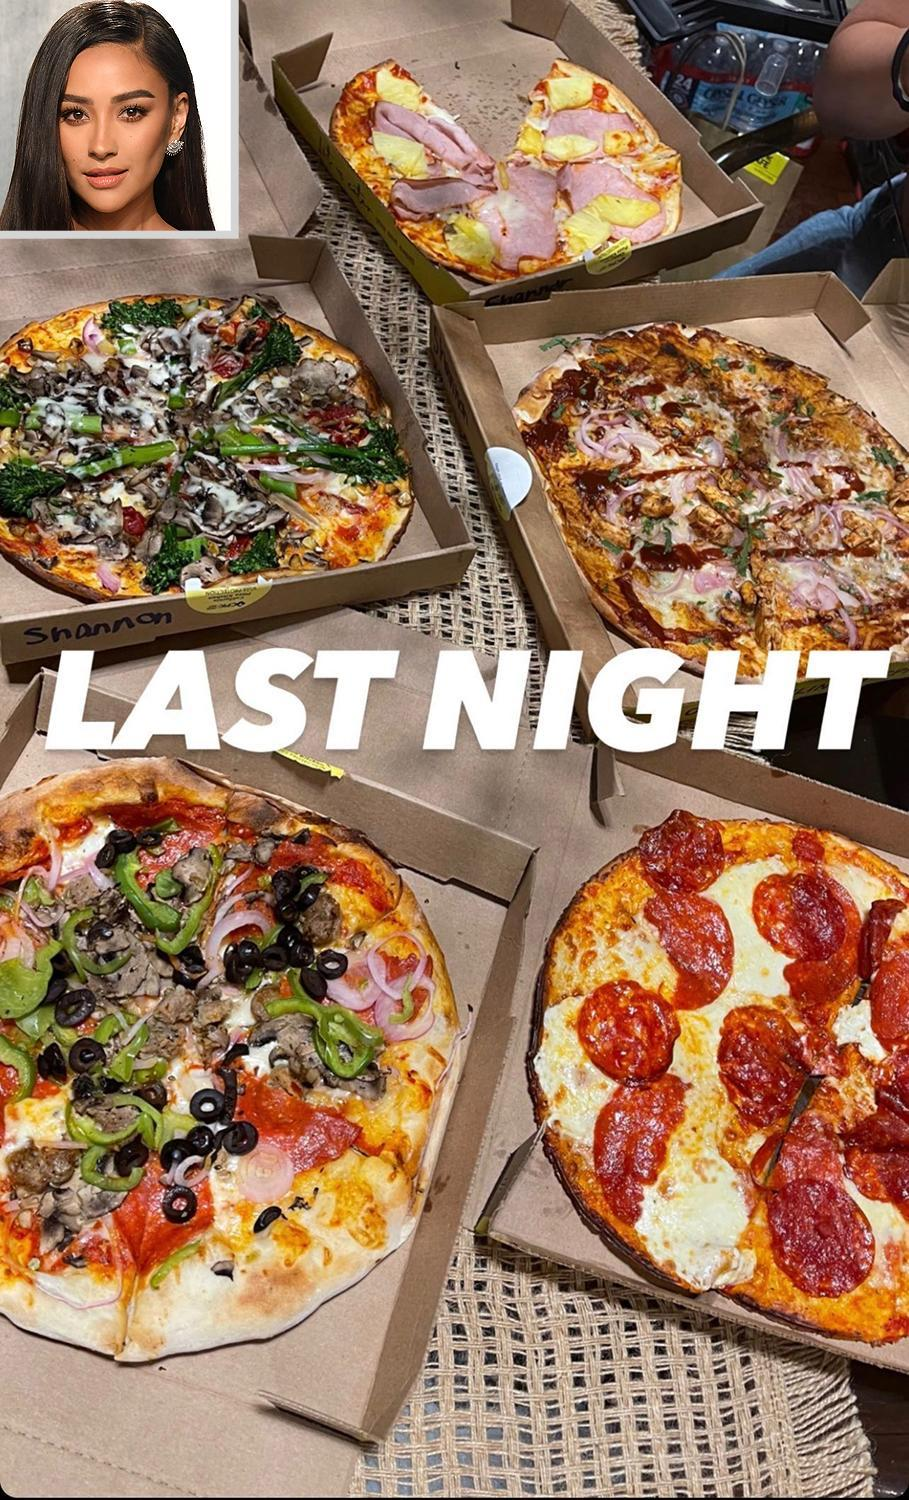 <p>Mitchell enjoyed a pizza feast with friends and we spy just about every topping you could dream of - Hawaiian-style, broccolini, peppers and olives, pepperoni, red onions and more. </p>